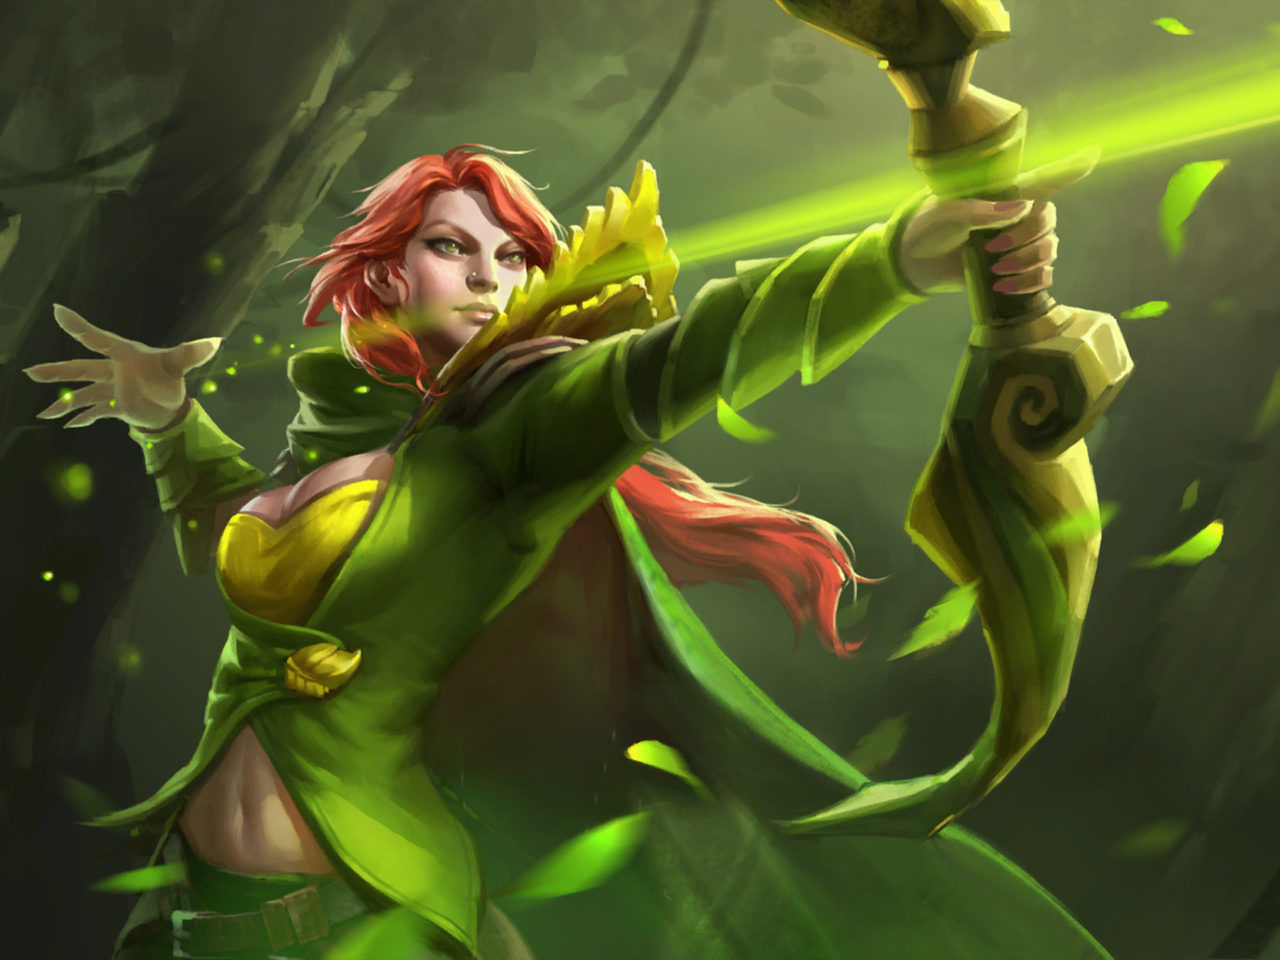 Dota 2 Hero Windranger Shooting With Bow And Arrow Forest